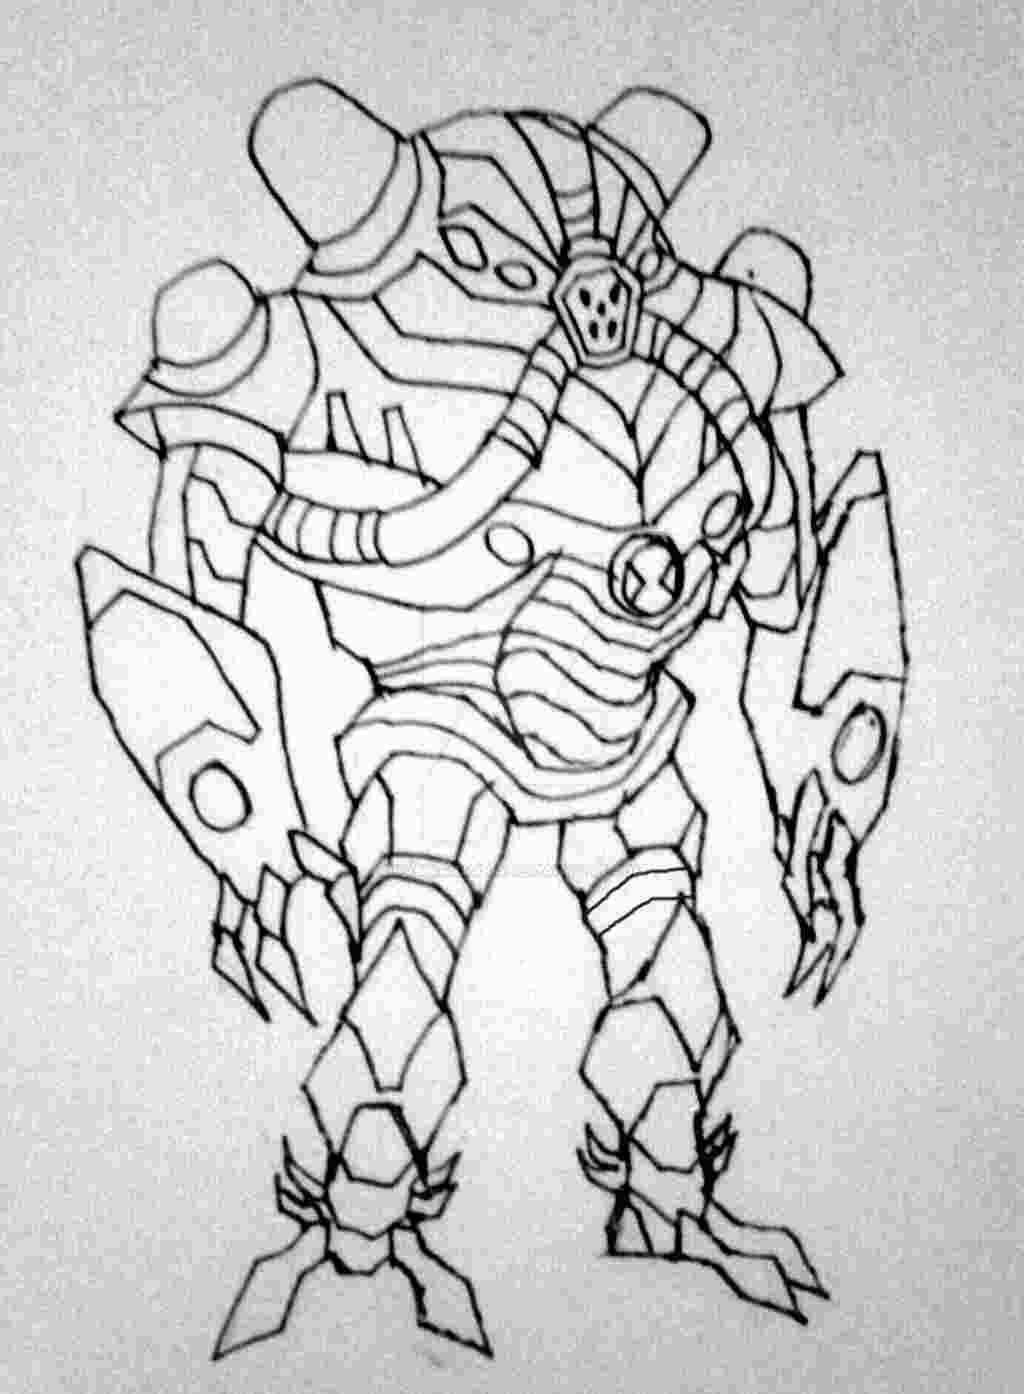 Ben 10 Coloring Page Ben 10 Overflow Coloring Cartoon Coloring Pages Coloring Pages Rapunzel Coloring Pages